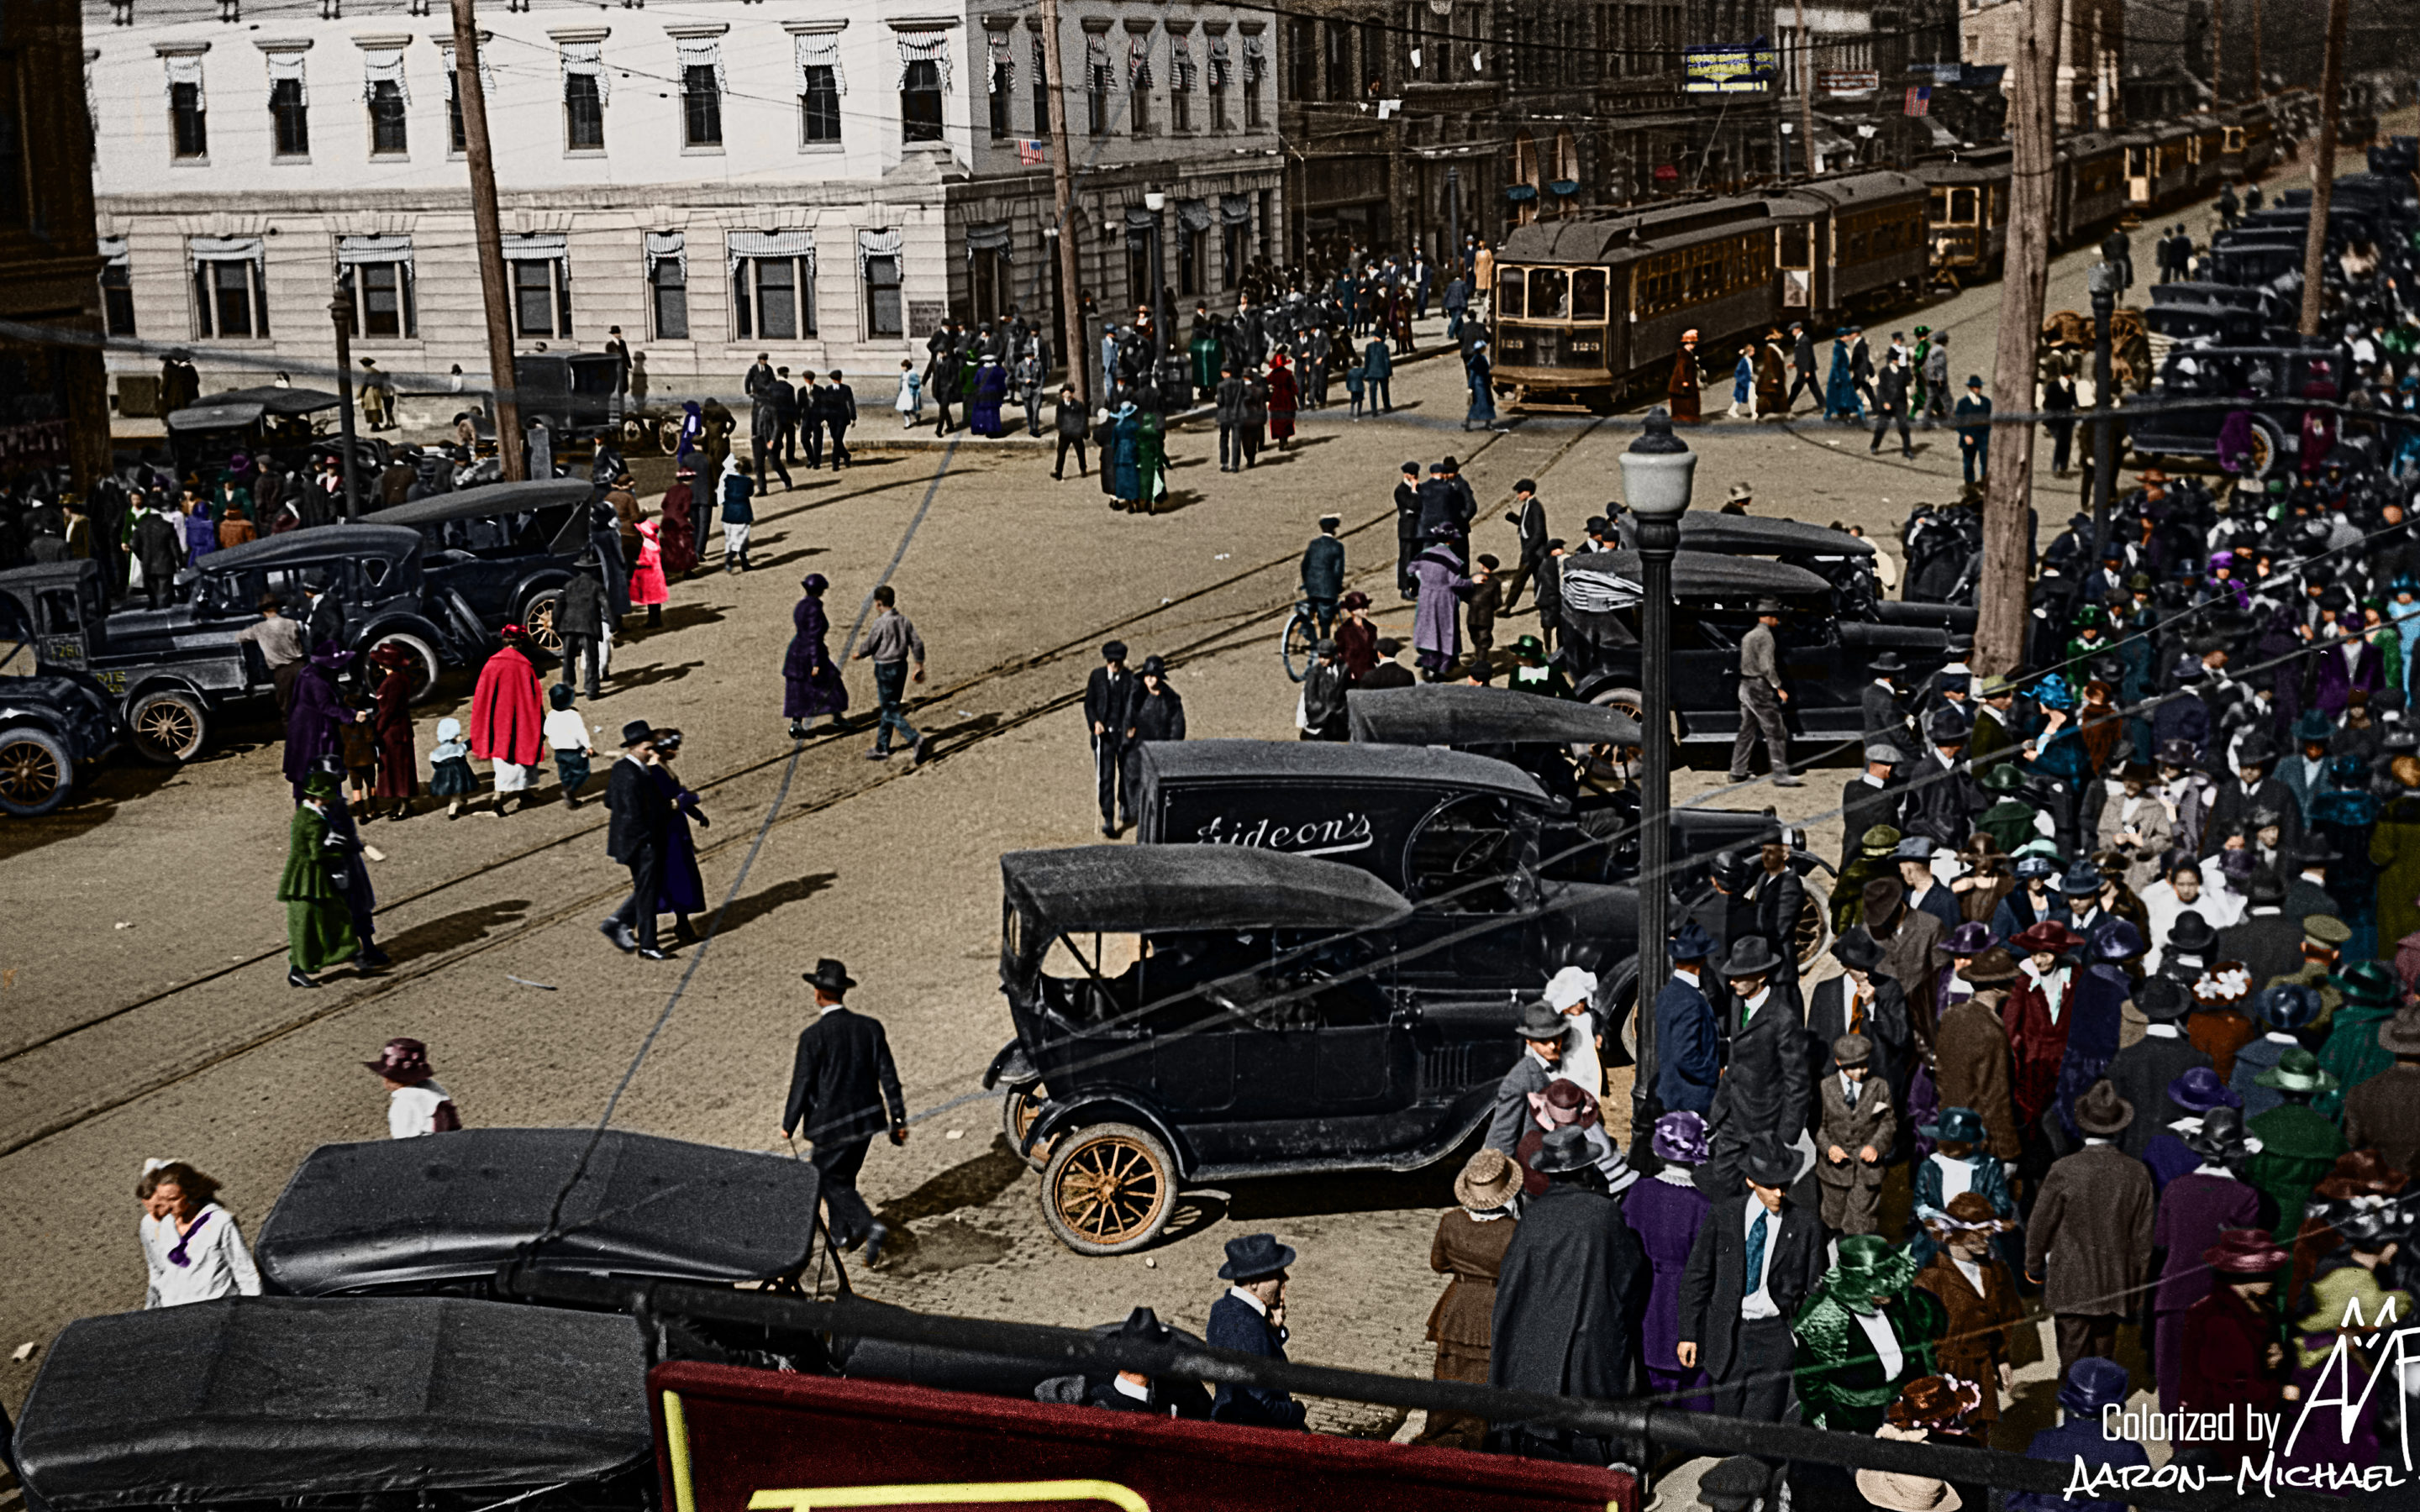 12 Colorized Photos That Will Change How You See Huntington's Past